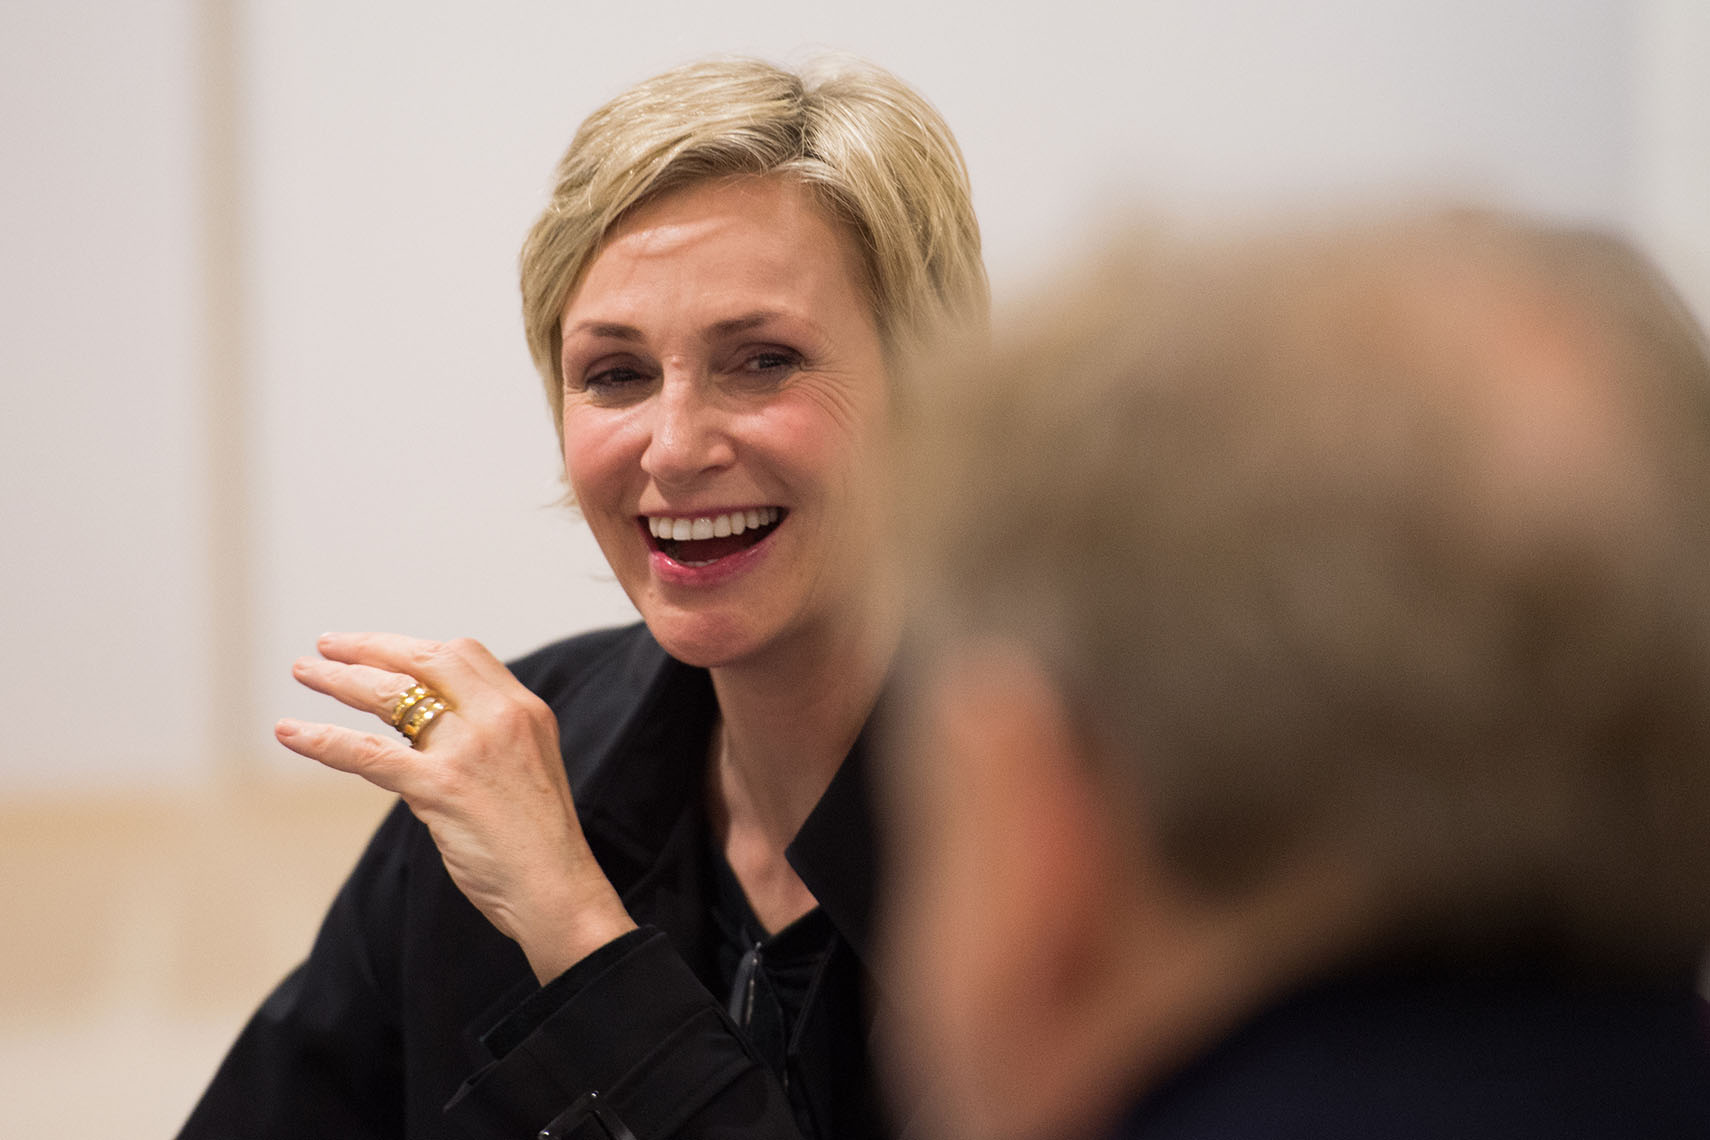 Jane Lynch | Washington Photographer Aaron Clamage